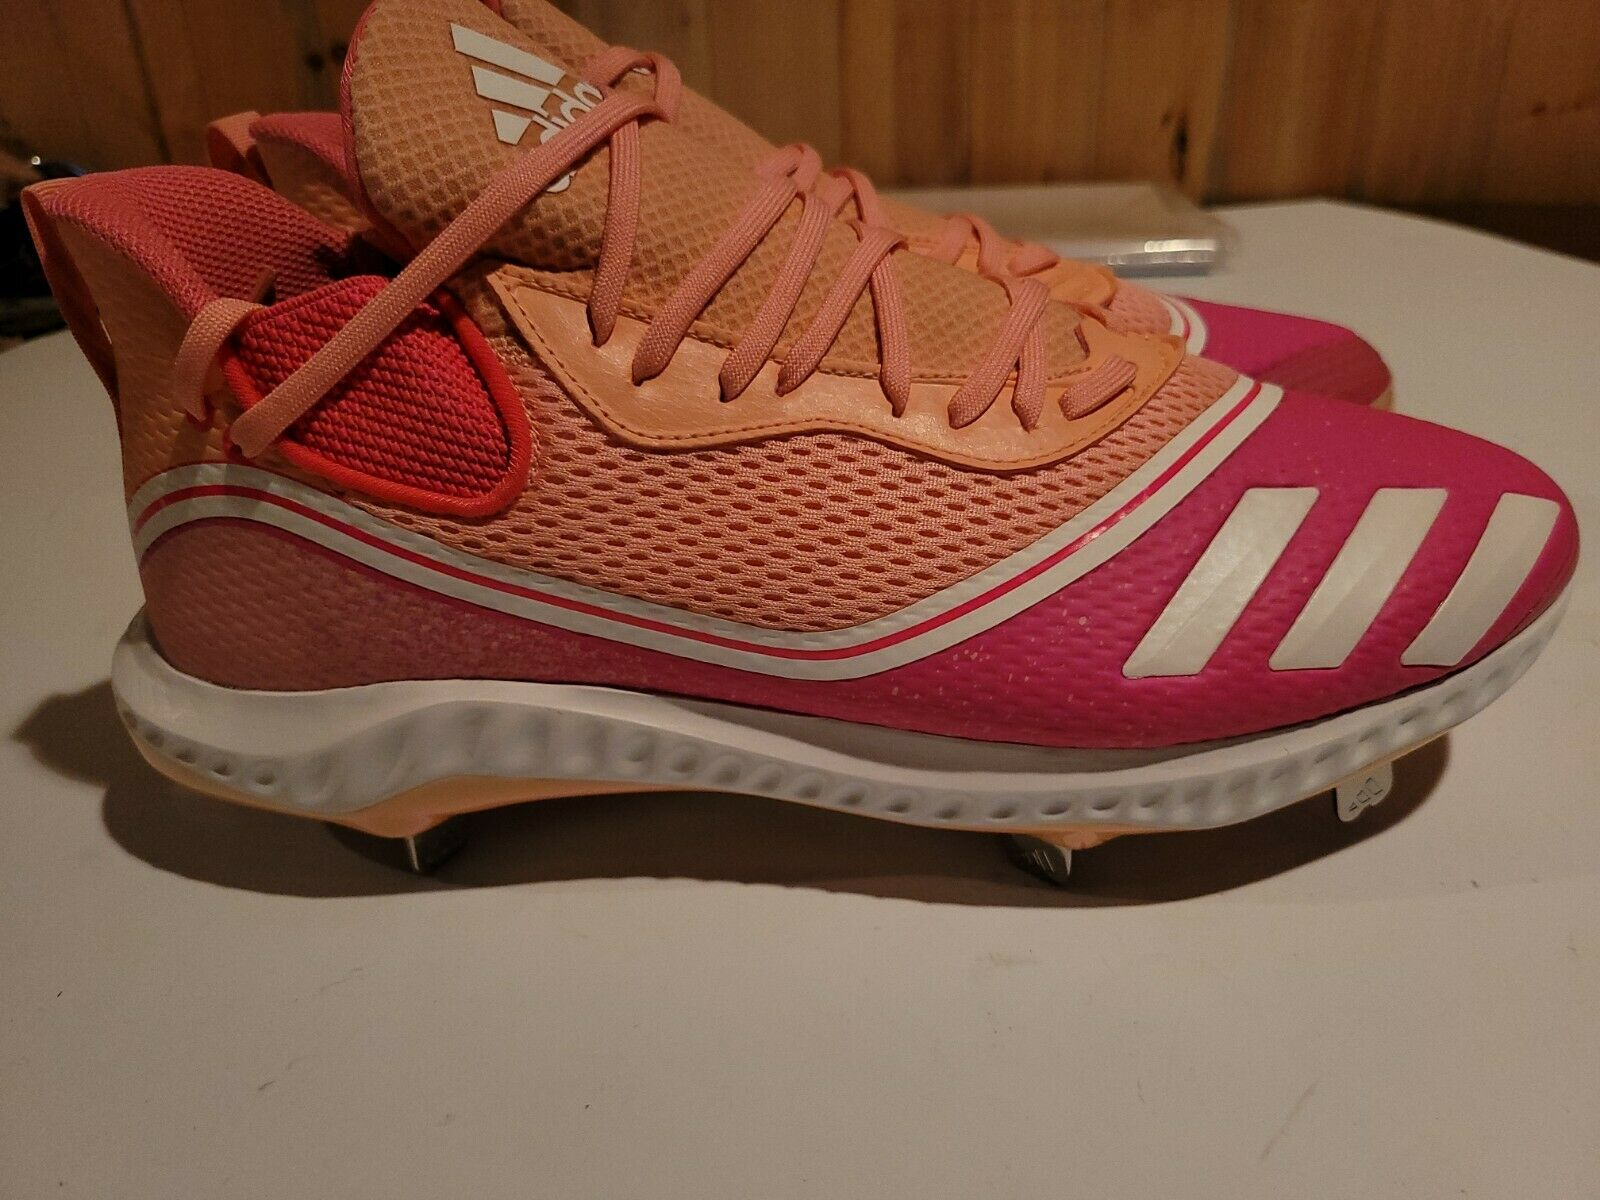 NEW Sz 12.5 Adidas Icon V Boost Pink Mother's Day Metal Baseball Cleats FW5543